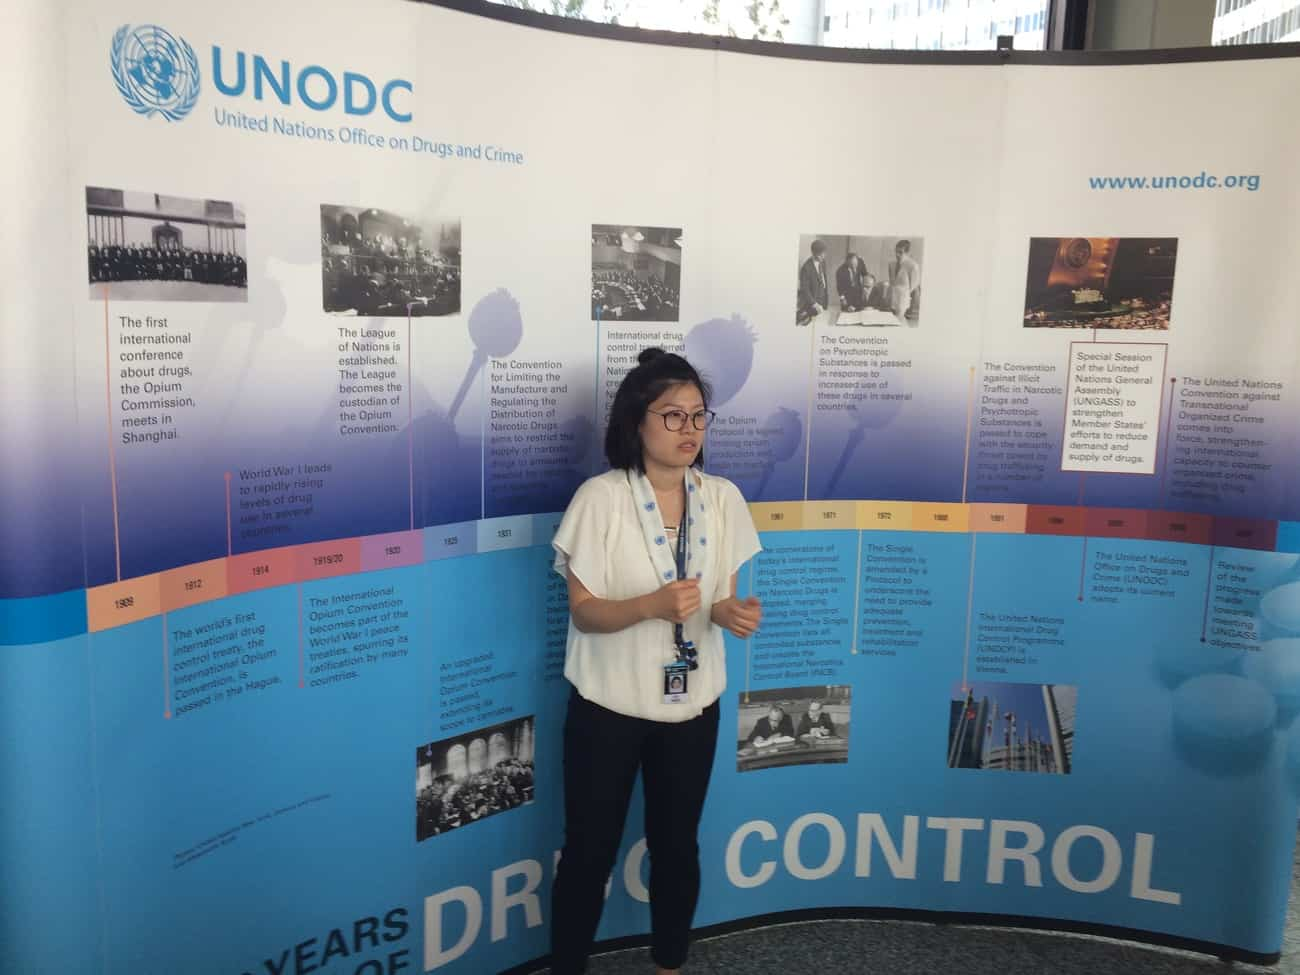 United Nations Vienna Tour UNODC display